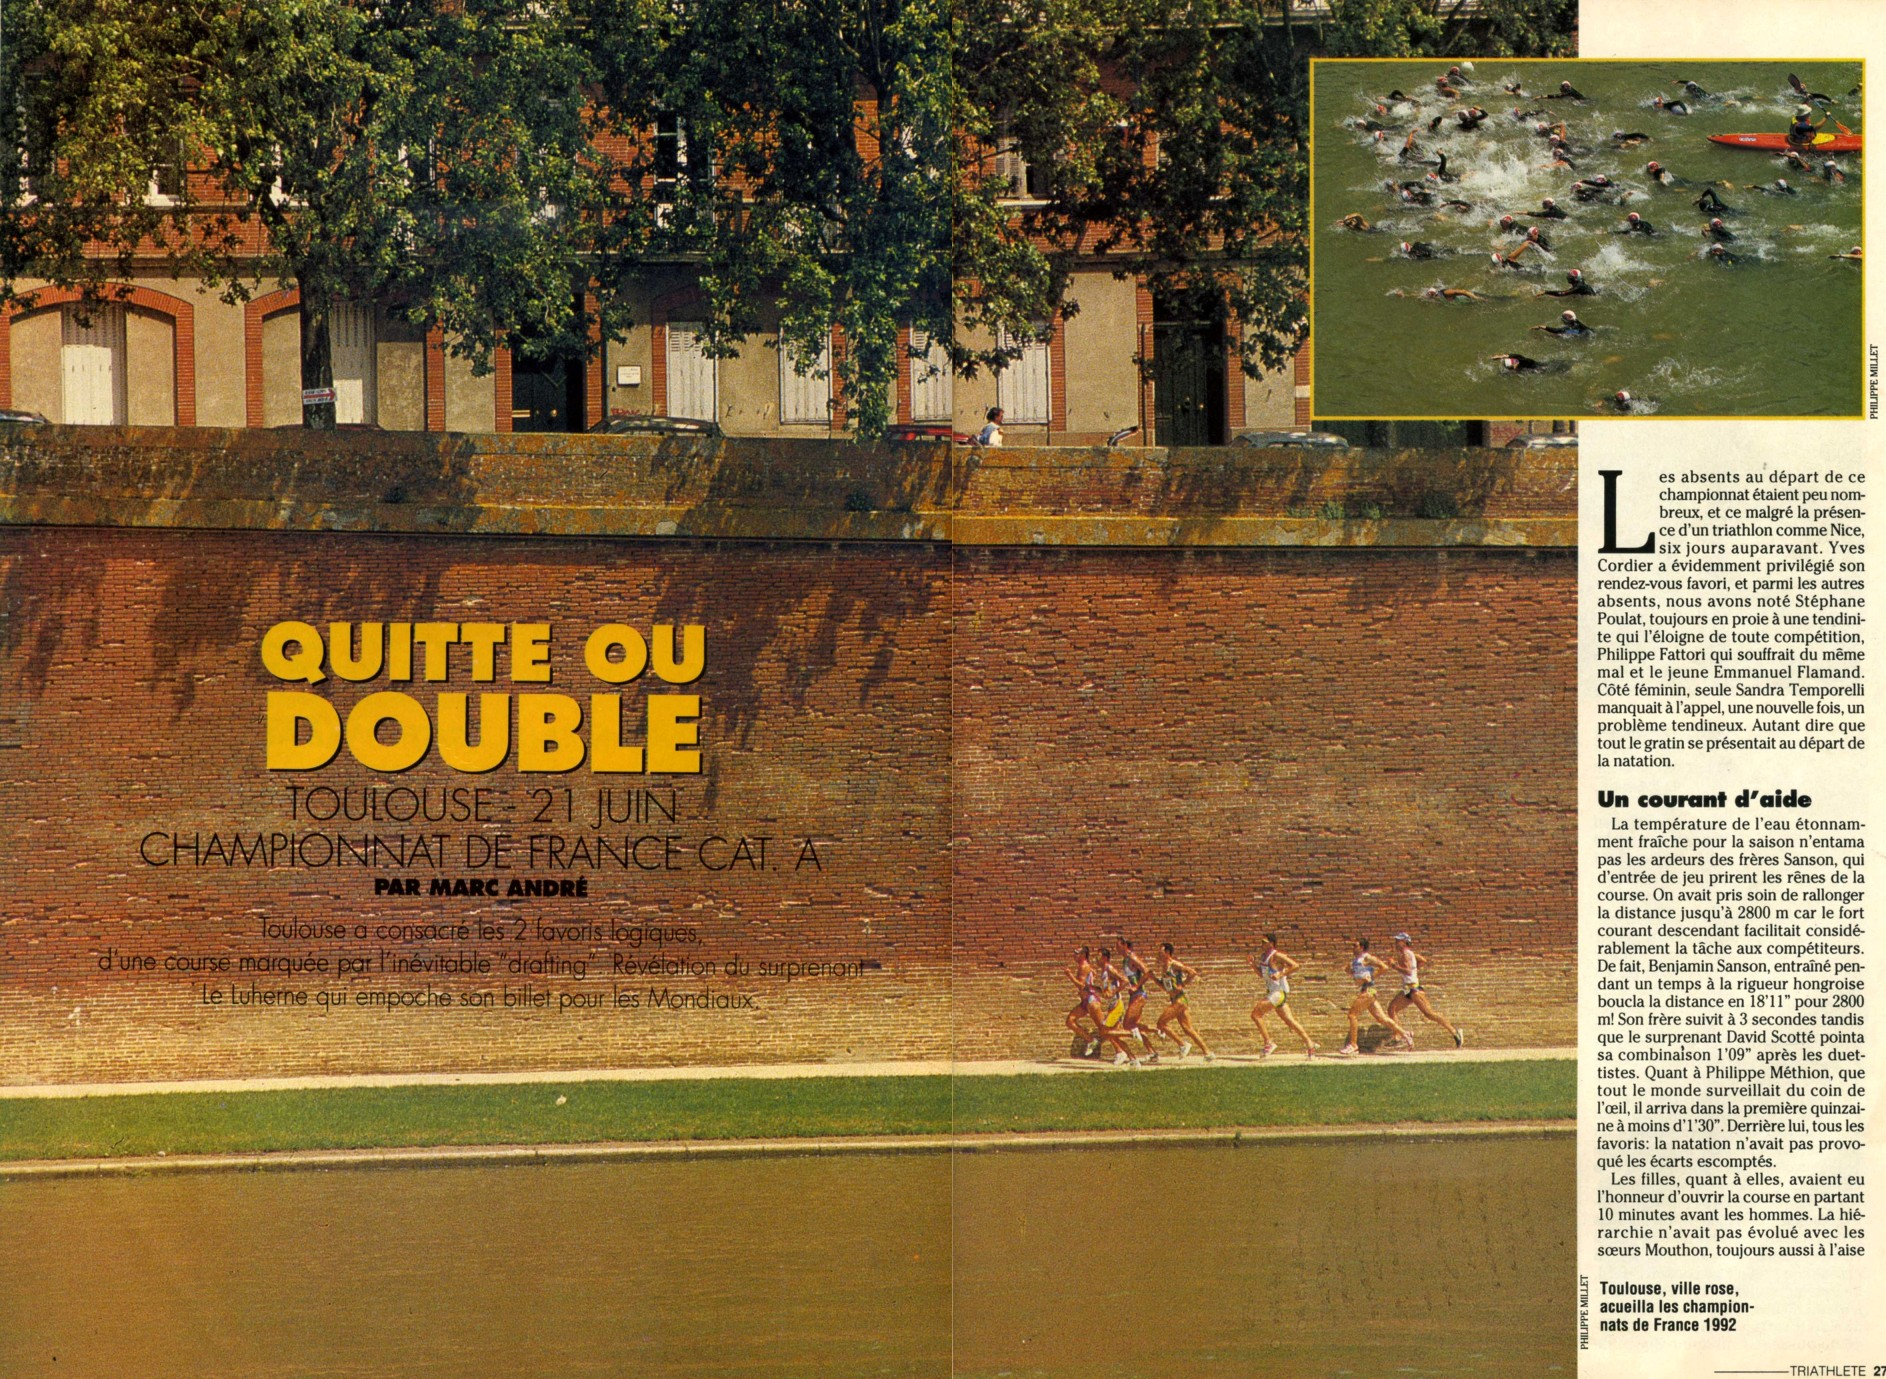 img[A]247&img[A]248_21-juin-1992_toulouse_40